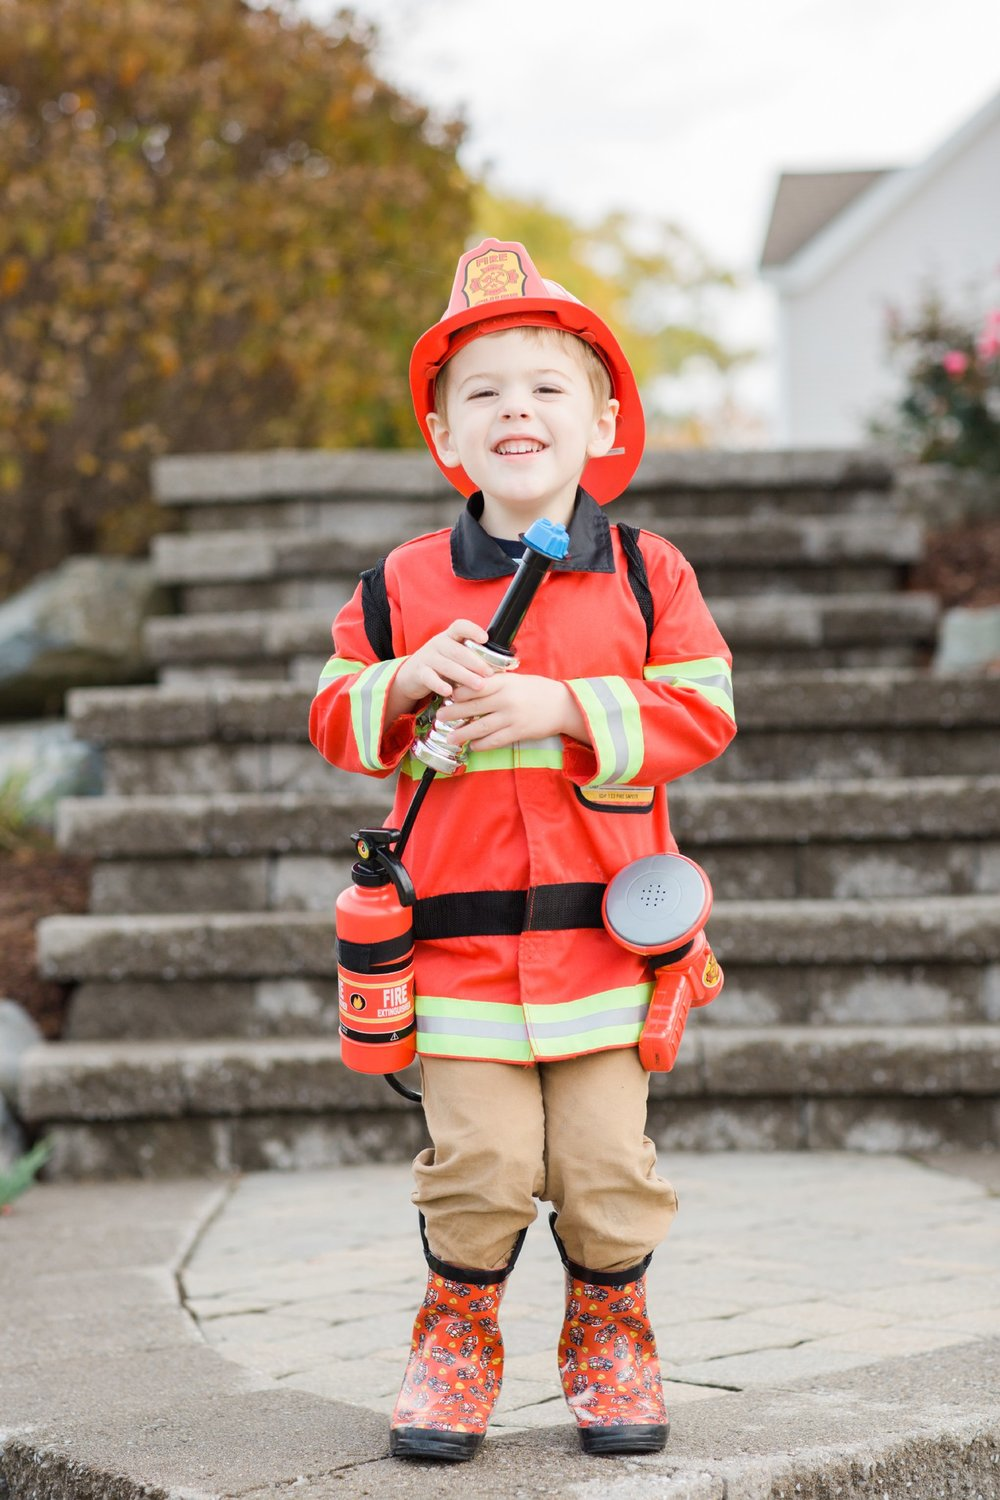 And in 2016 - our little Fire Chief!! This was an absolute miracle that I got him to smile -- he just kept running everywhere trying to put out fires!